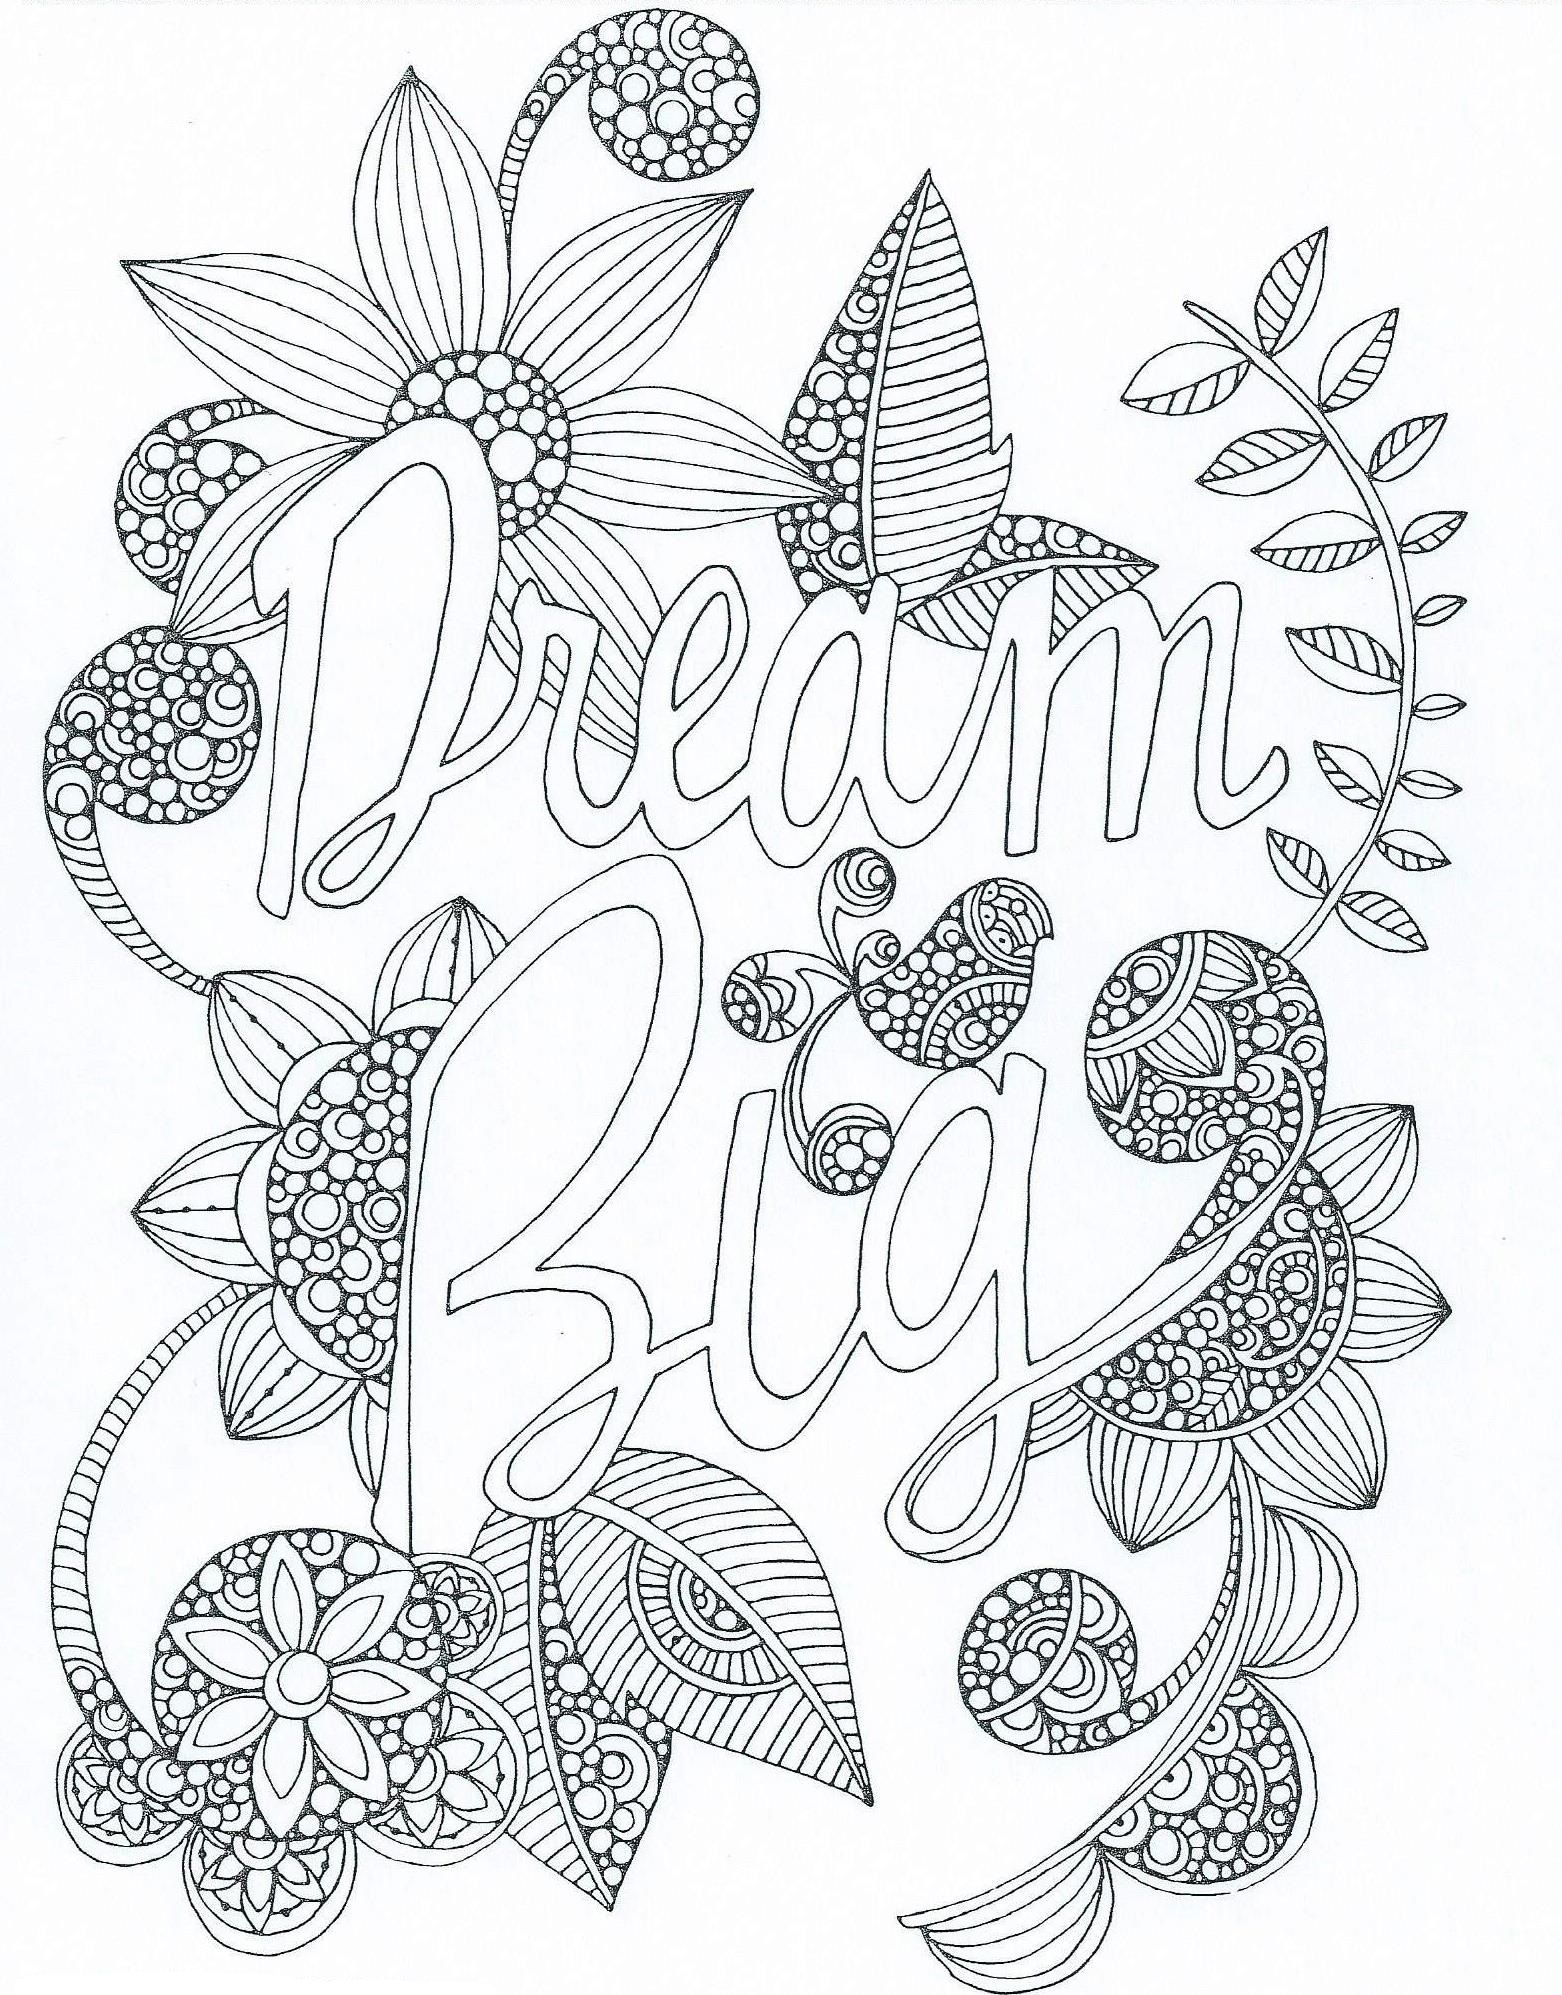 Zentangle | Quote coloring pages, Adult coloring pages ...